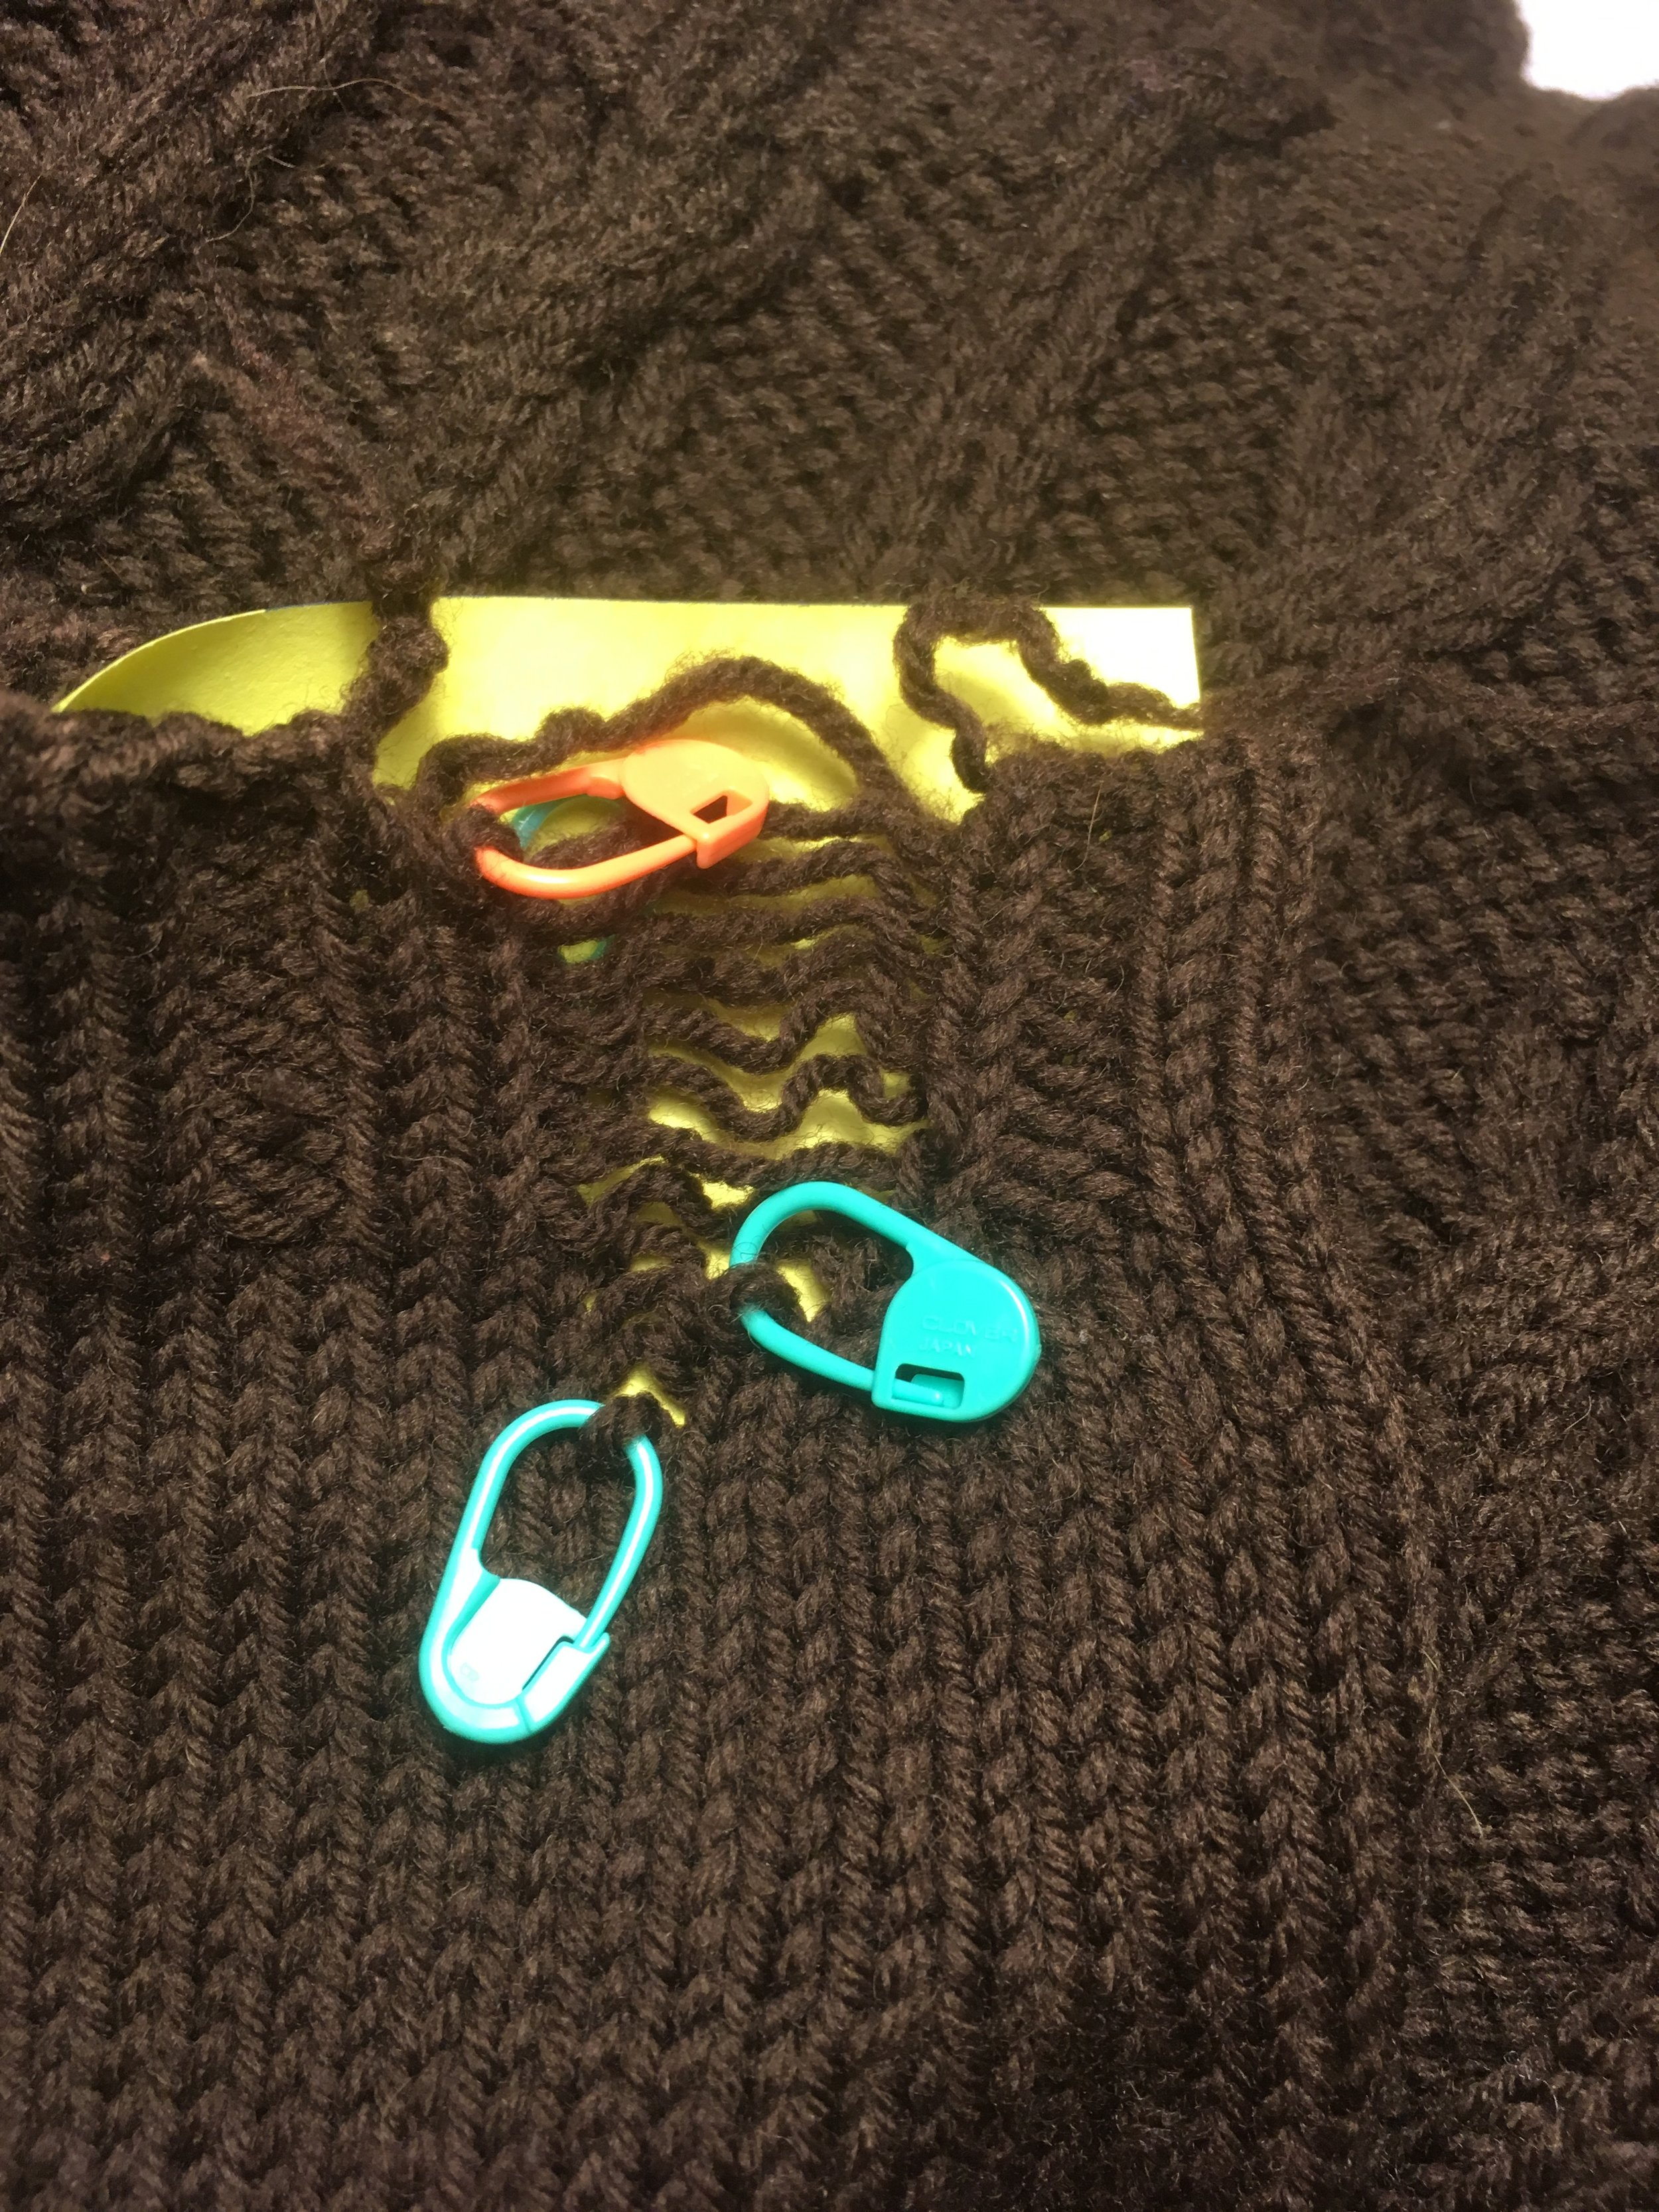 The injured sleeve…I immediately located the loose sts and placed in locking stitch markers.